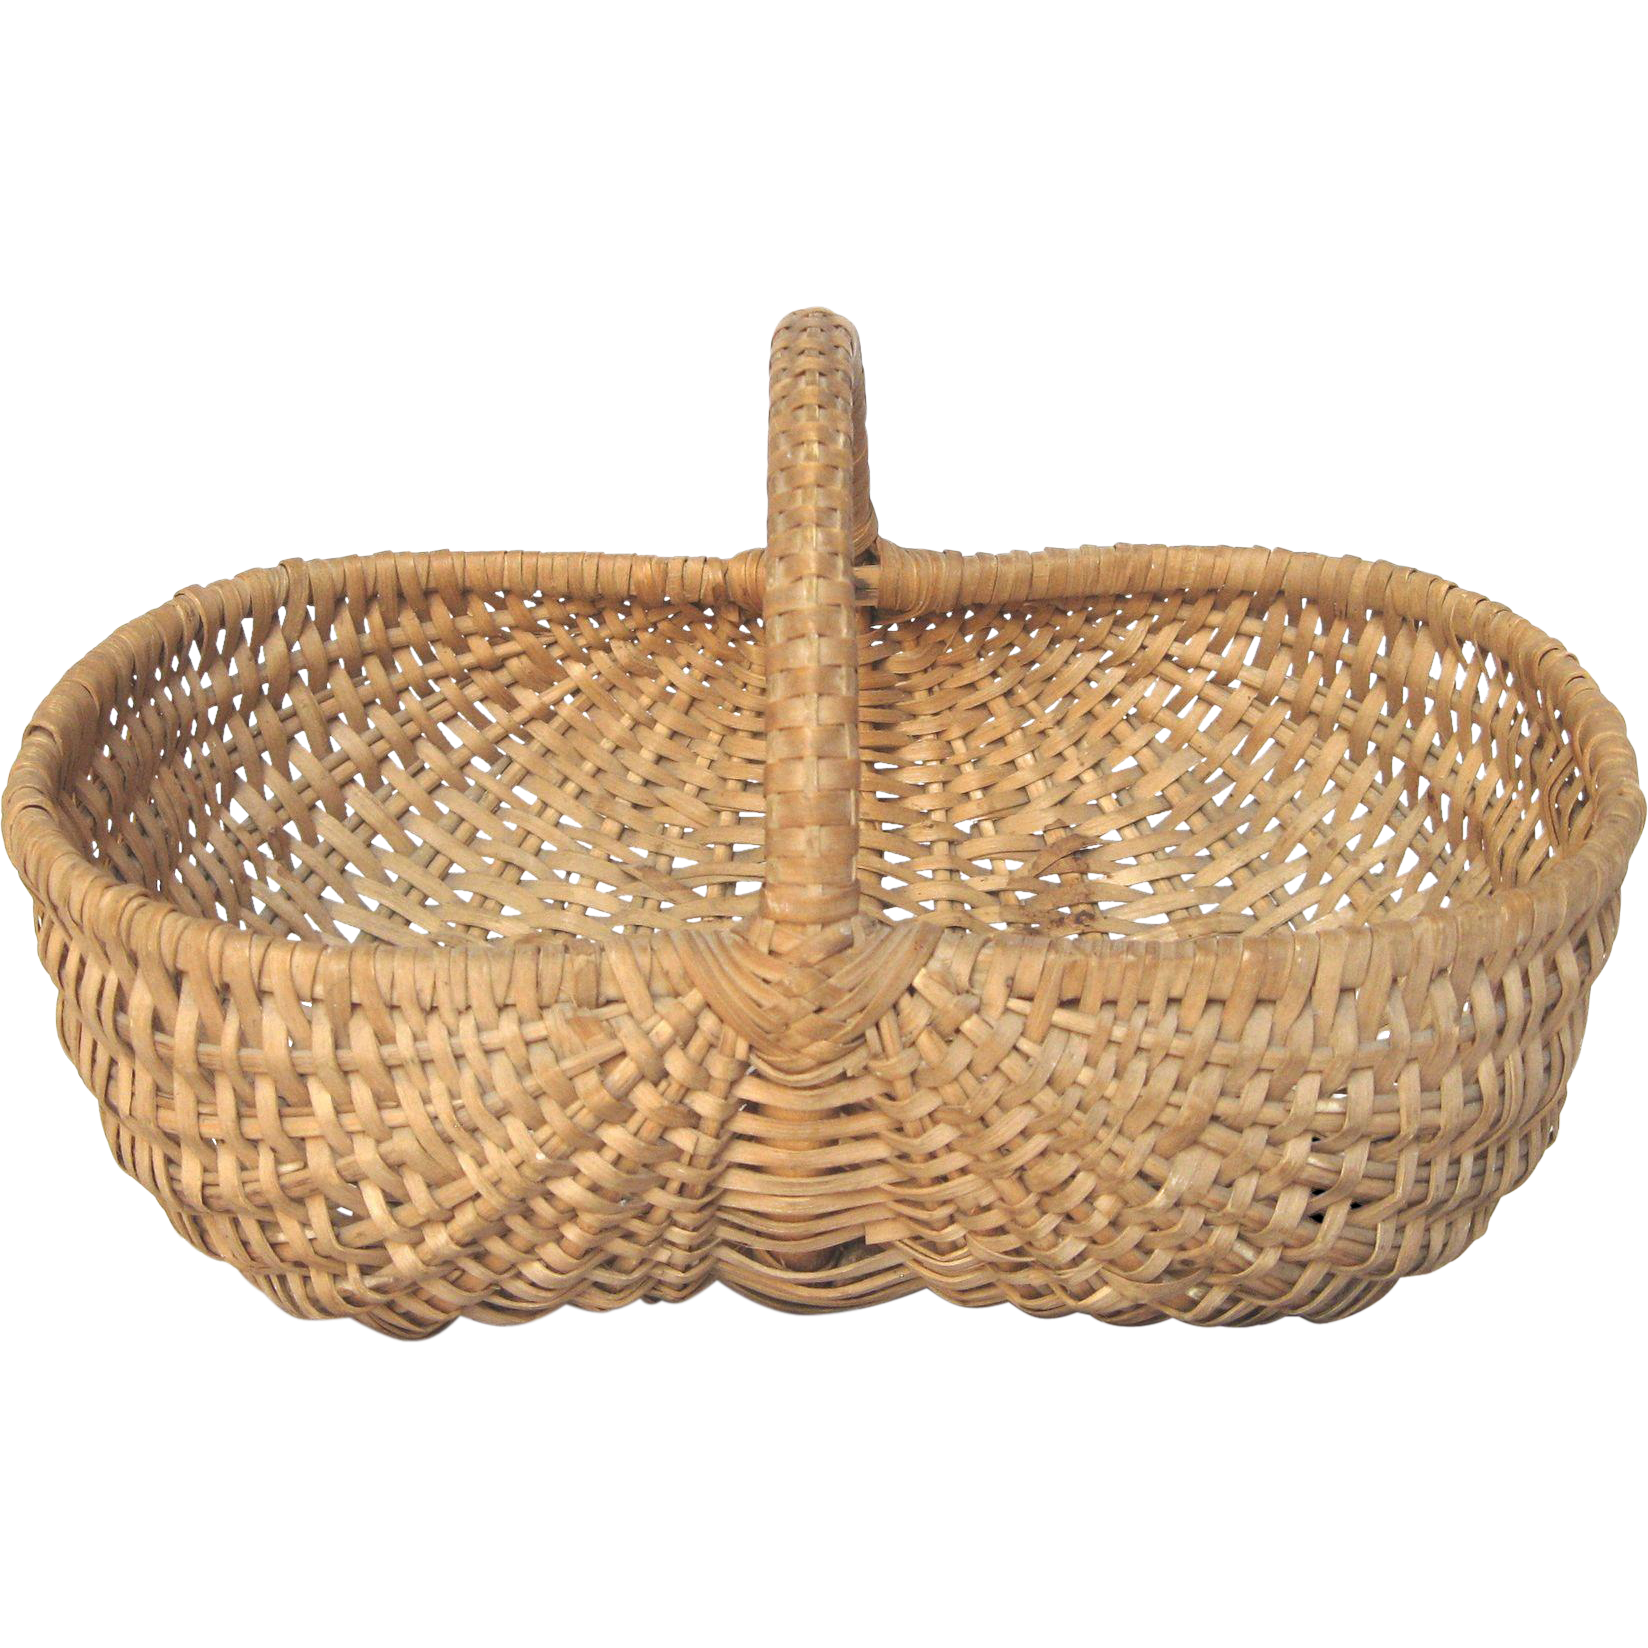 Woven Gathering Basket : Small french woven gathering basket from yesterdaysfrance